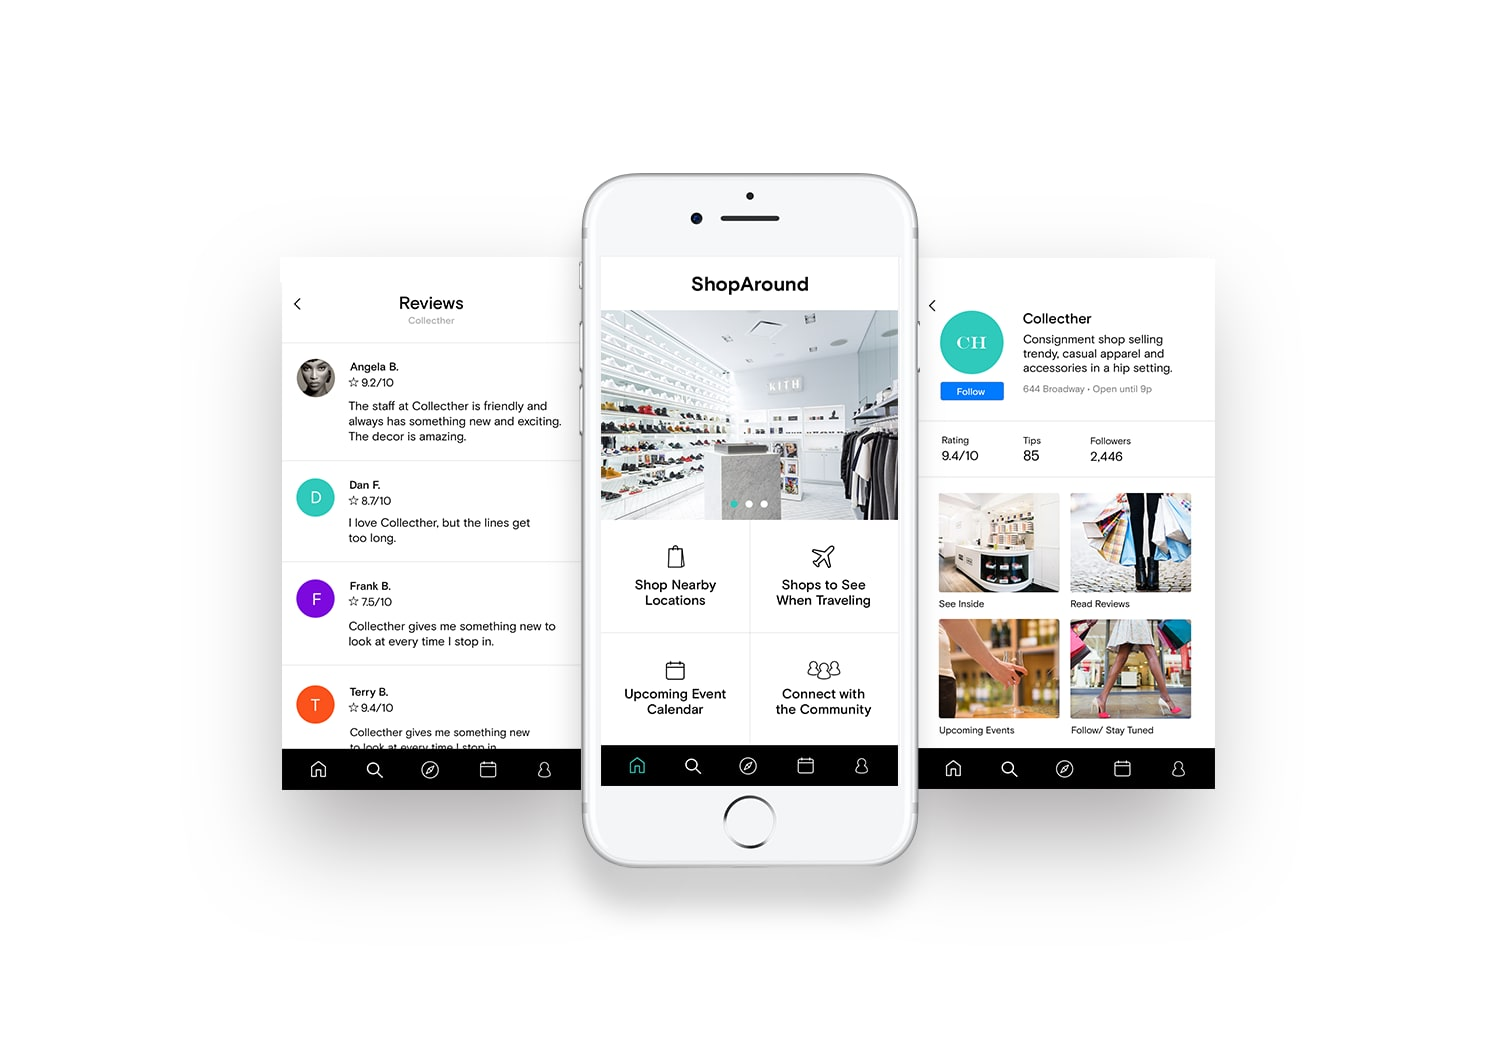 Making Local Shopping Easier with the ShopAround App